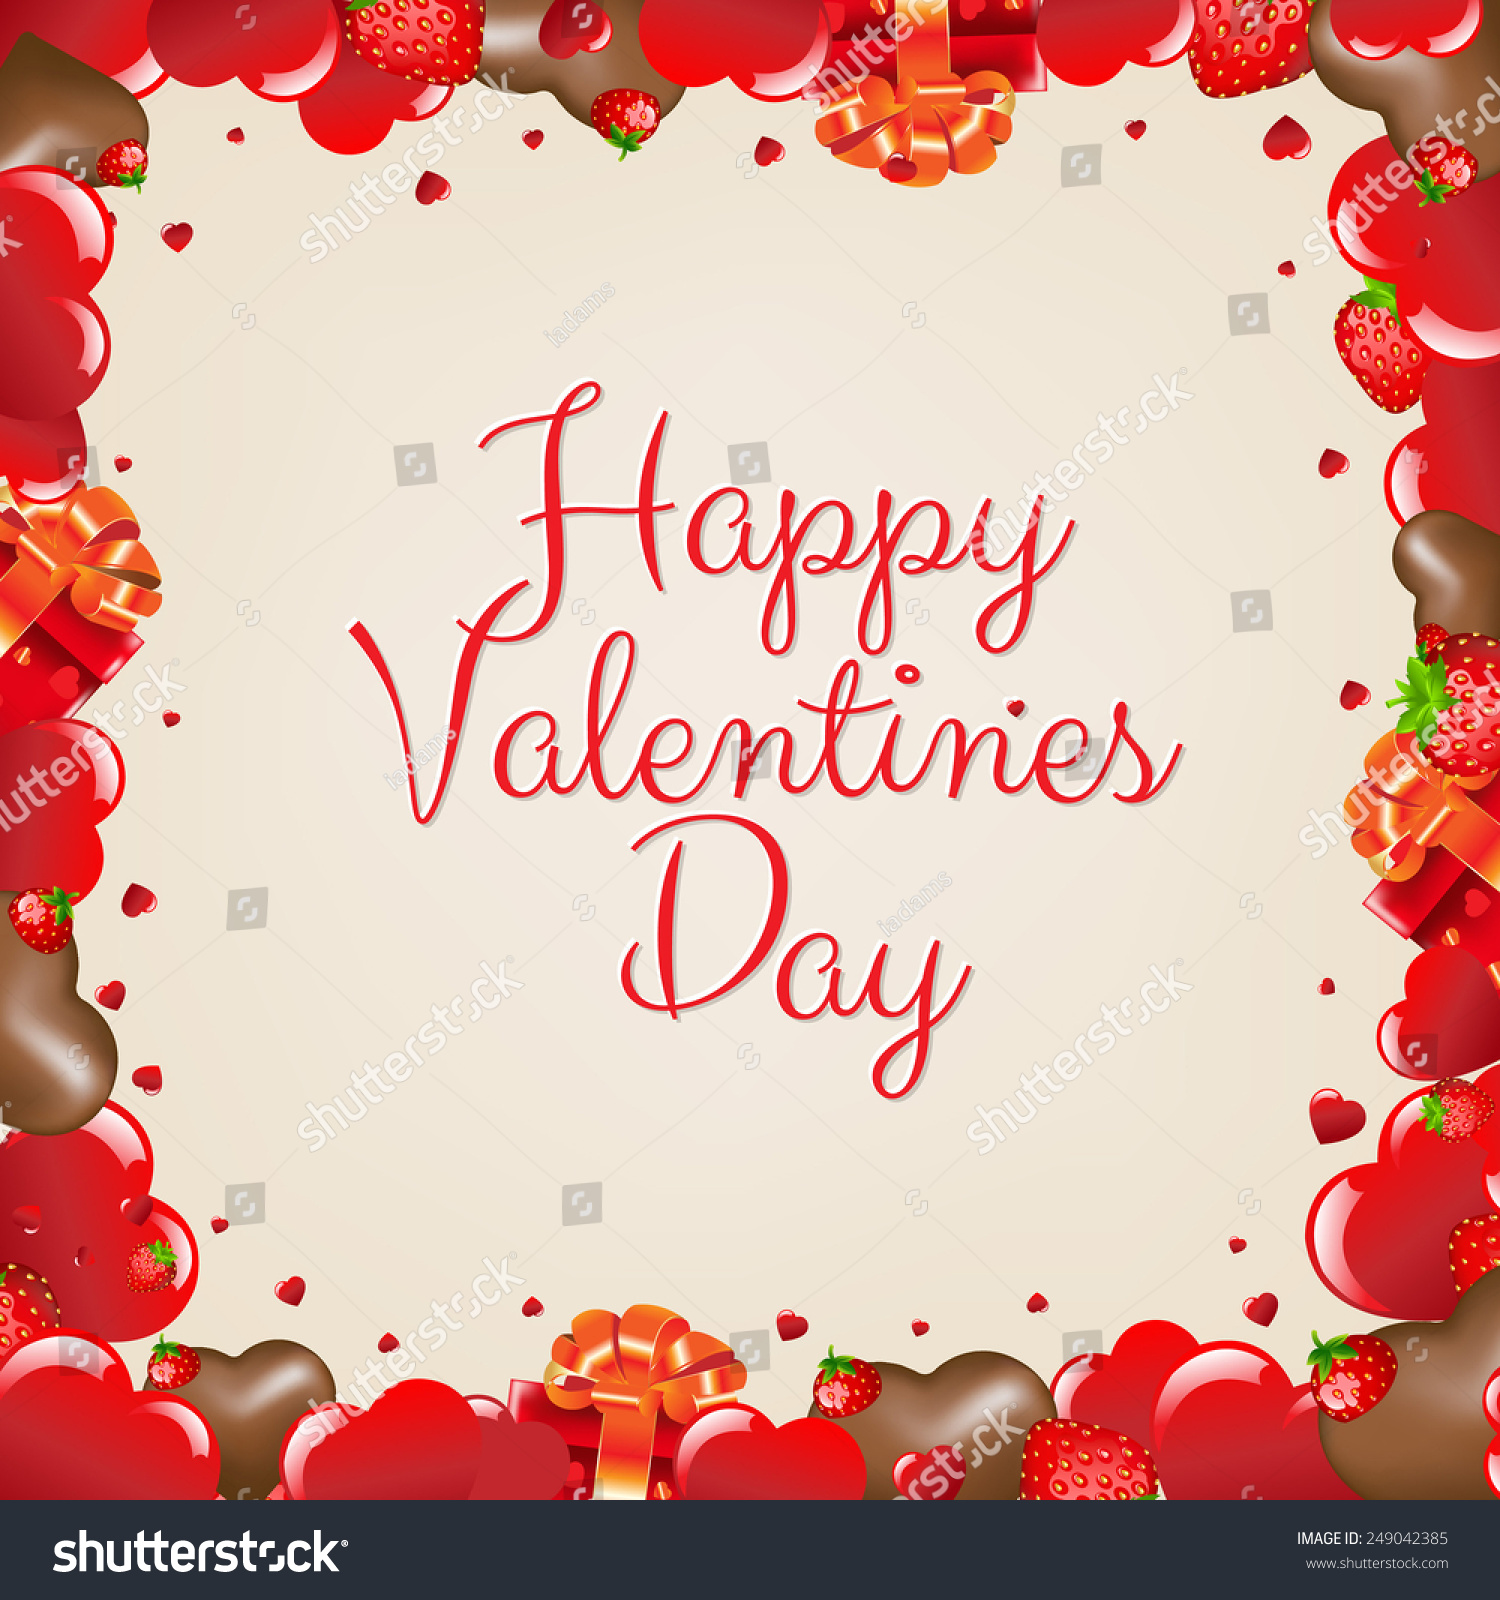 Happy Valentines Day Border With Gradient Mesh, Vector Illustration